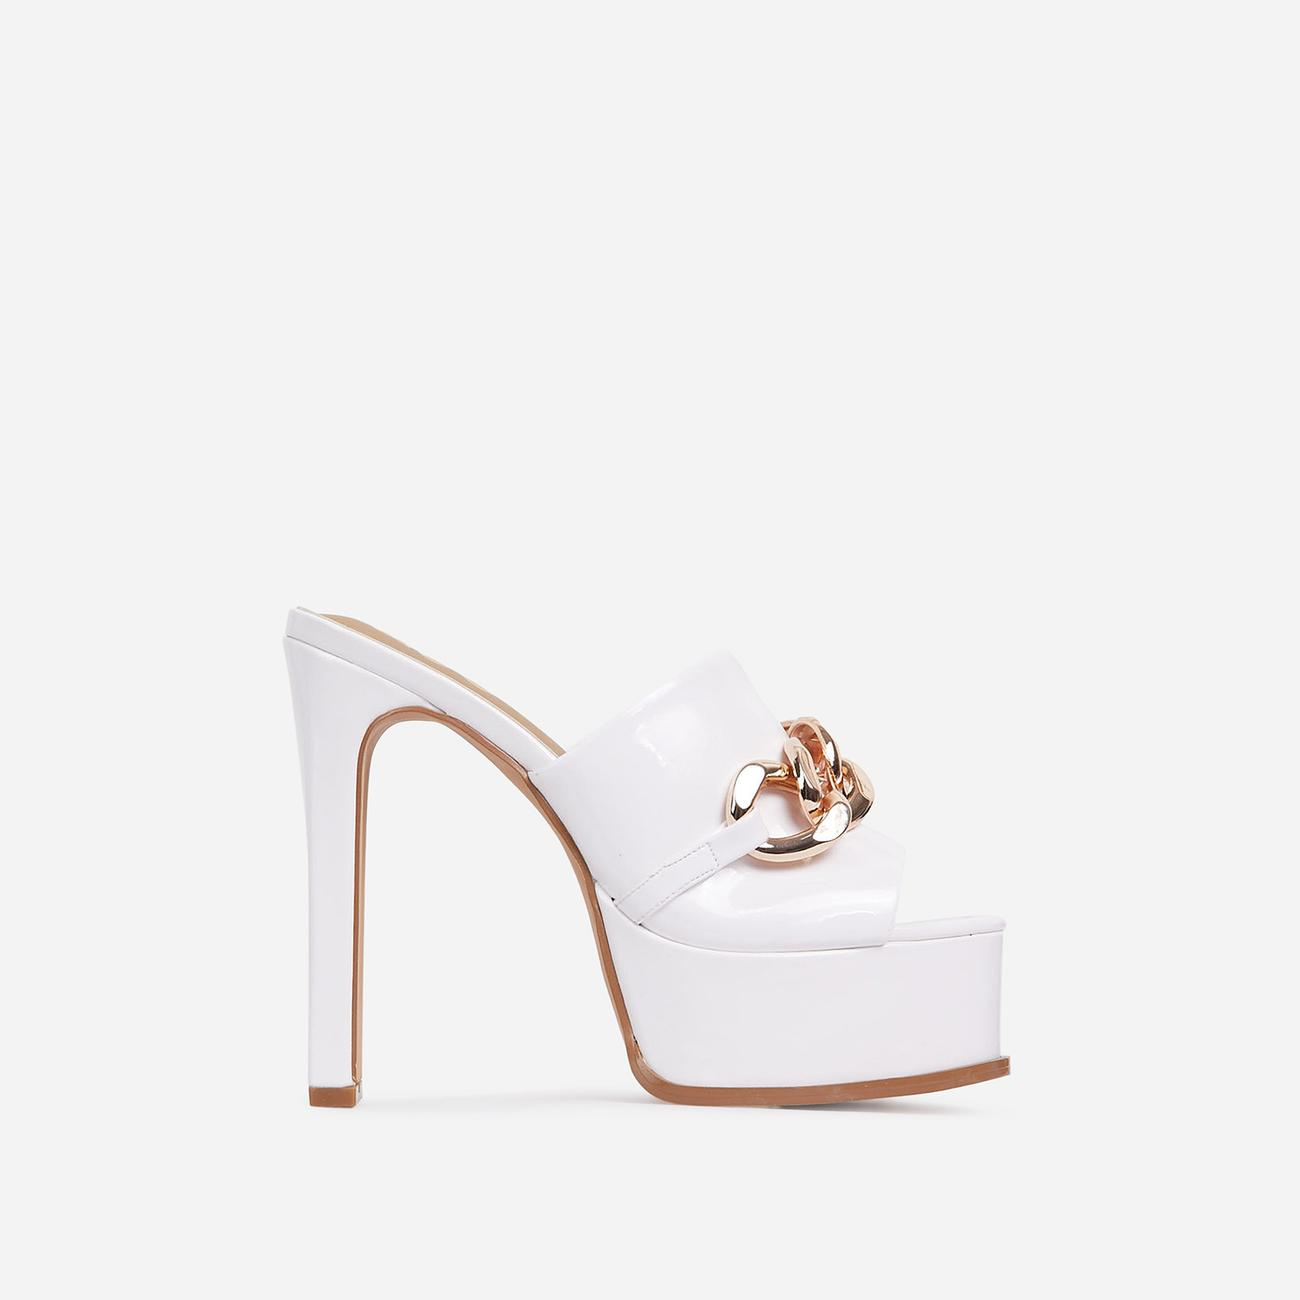 No-Chill Chain Detail Open Toe Platform Thin Block Heel Mule In White Patent Image 1